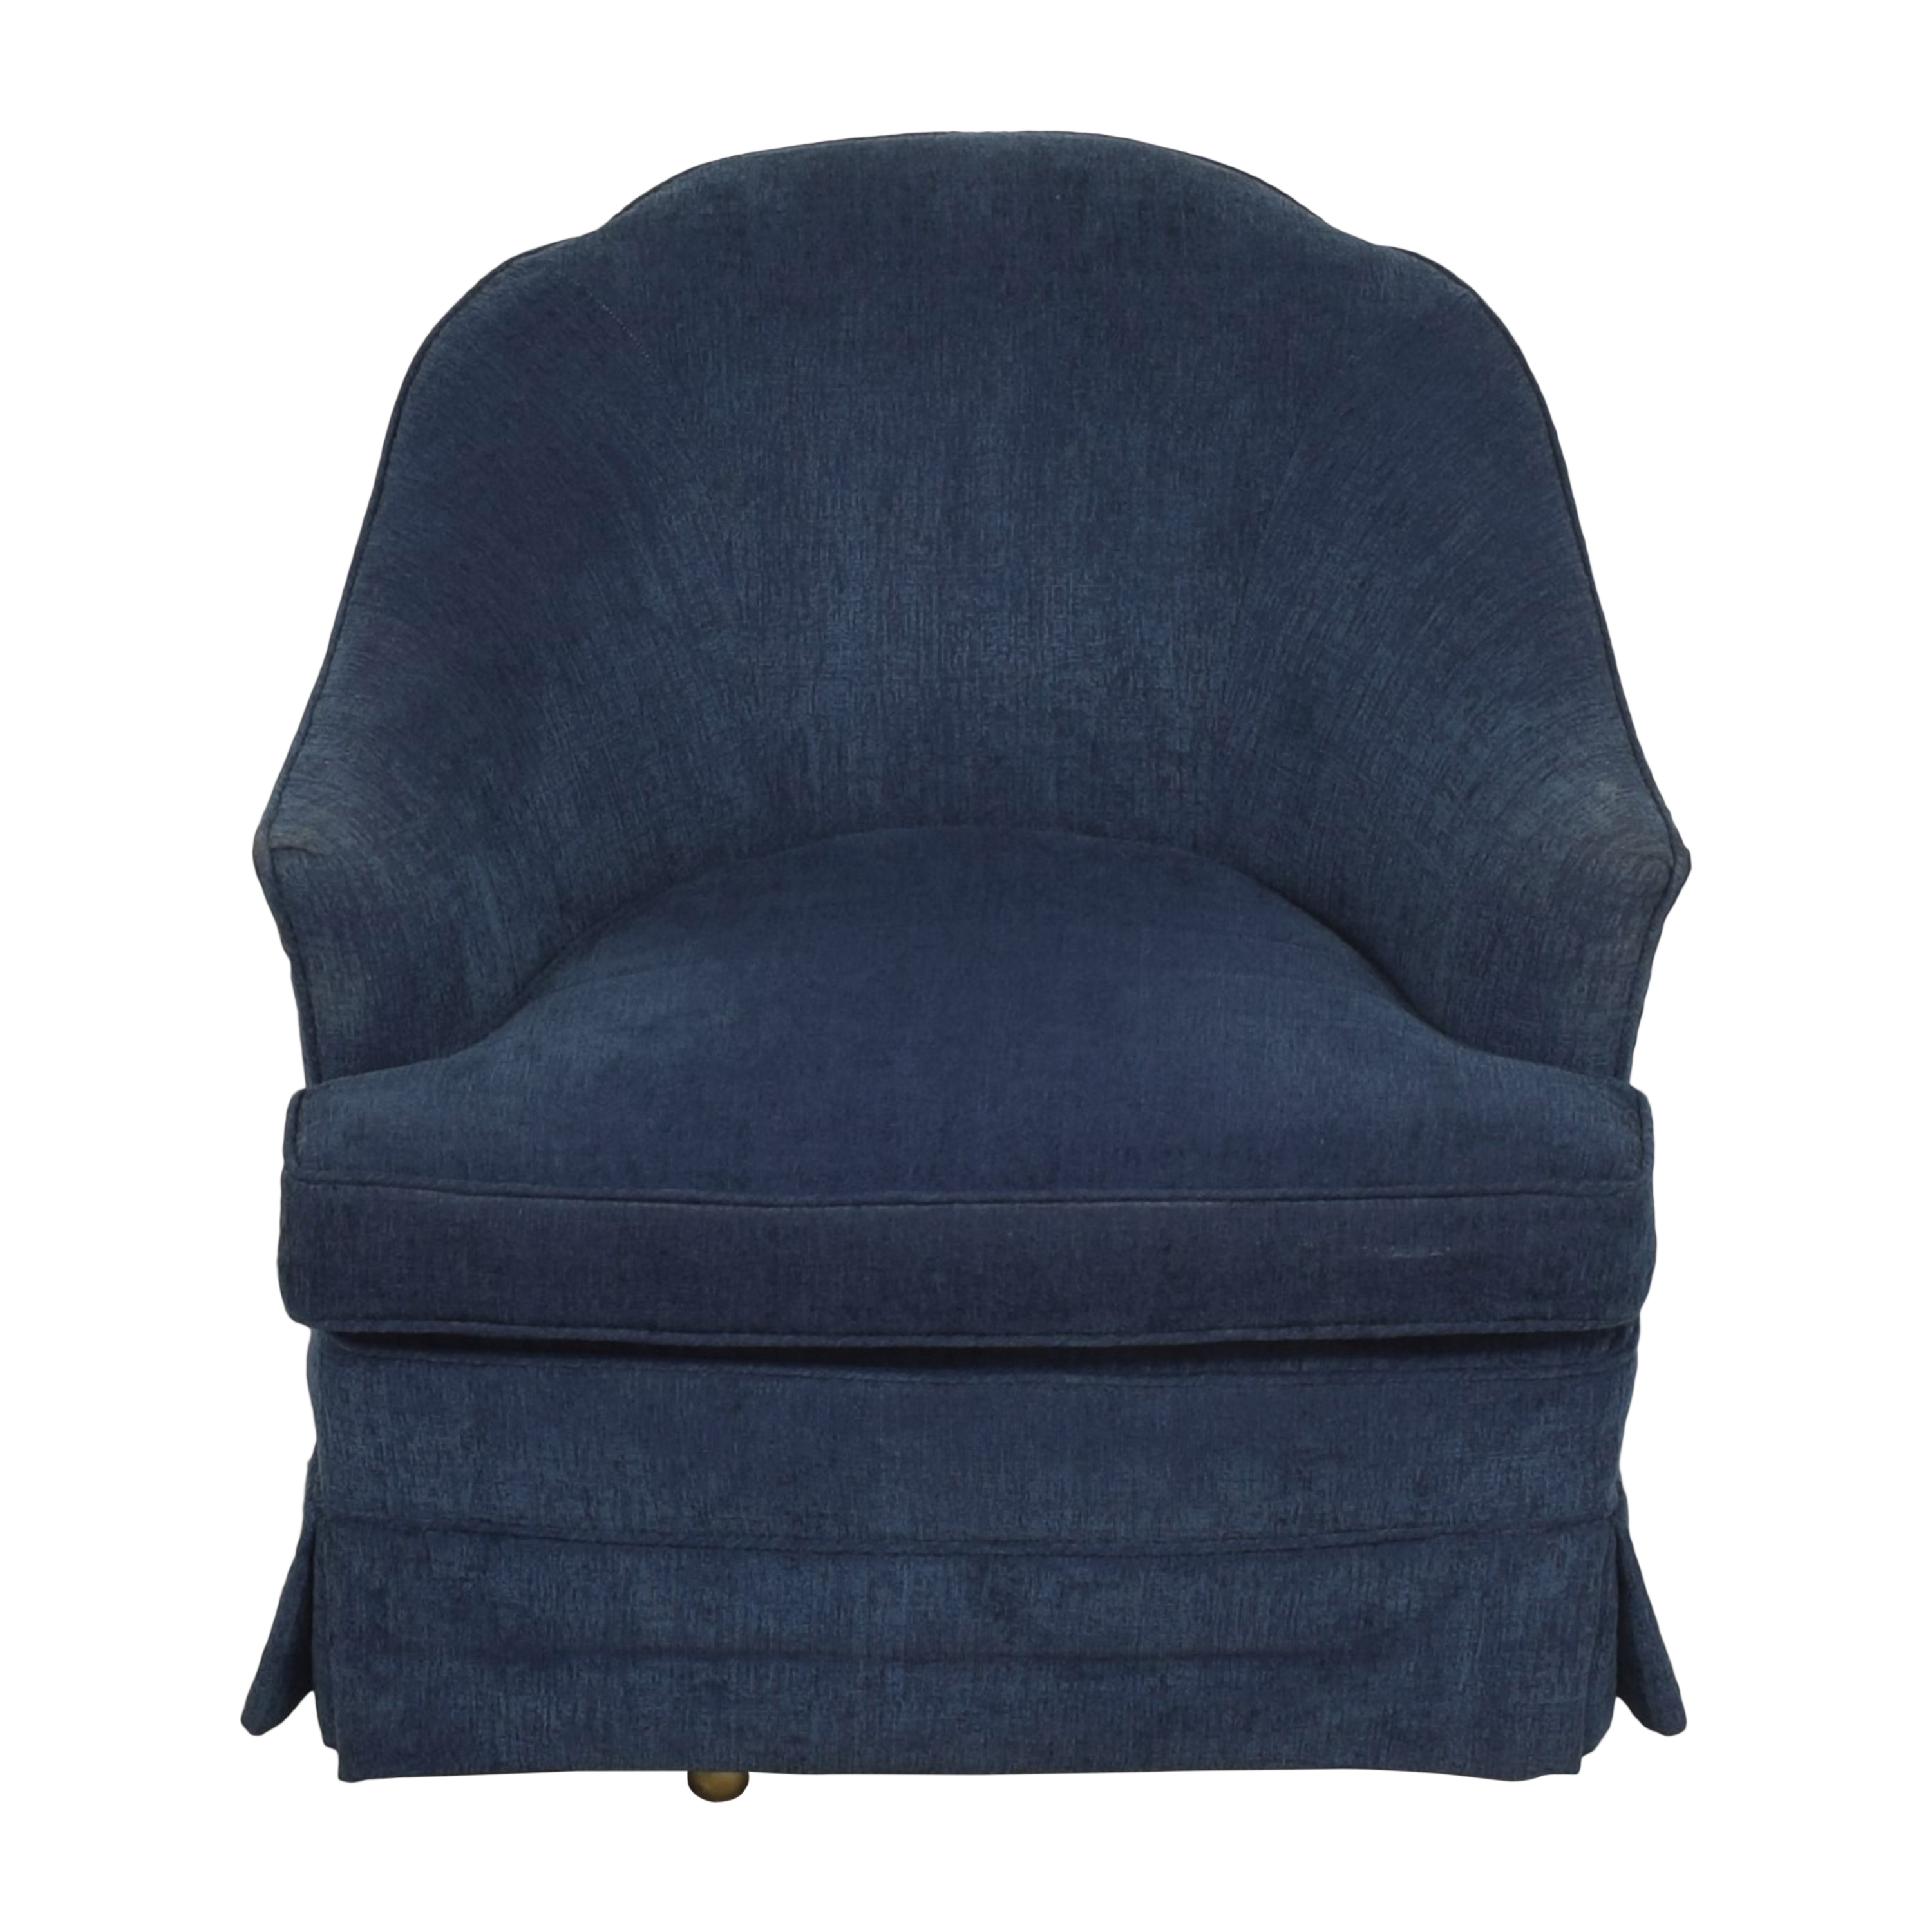 Carlyle Carlyle Upholstered Swivel Armchair